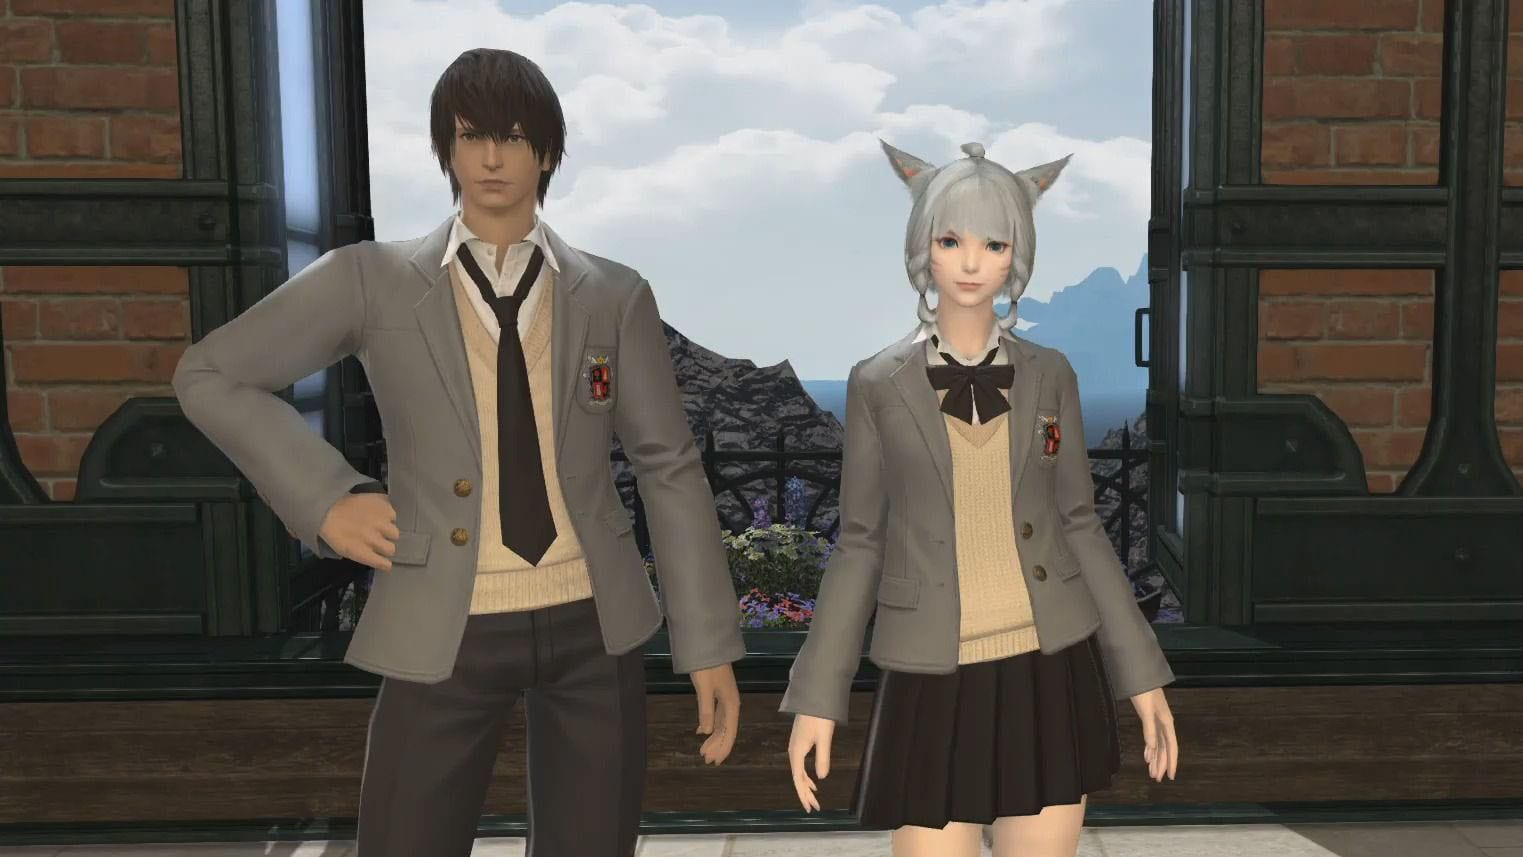 Closing Fantasy XIV Getting College Uniform Costumes, With a Caveat 1